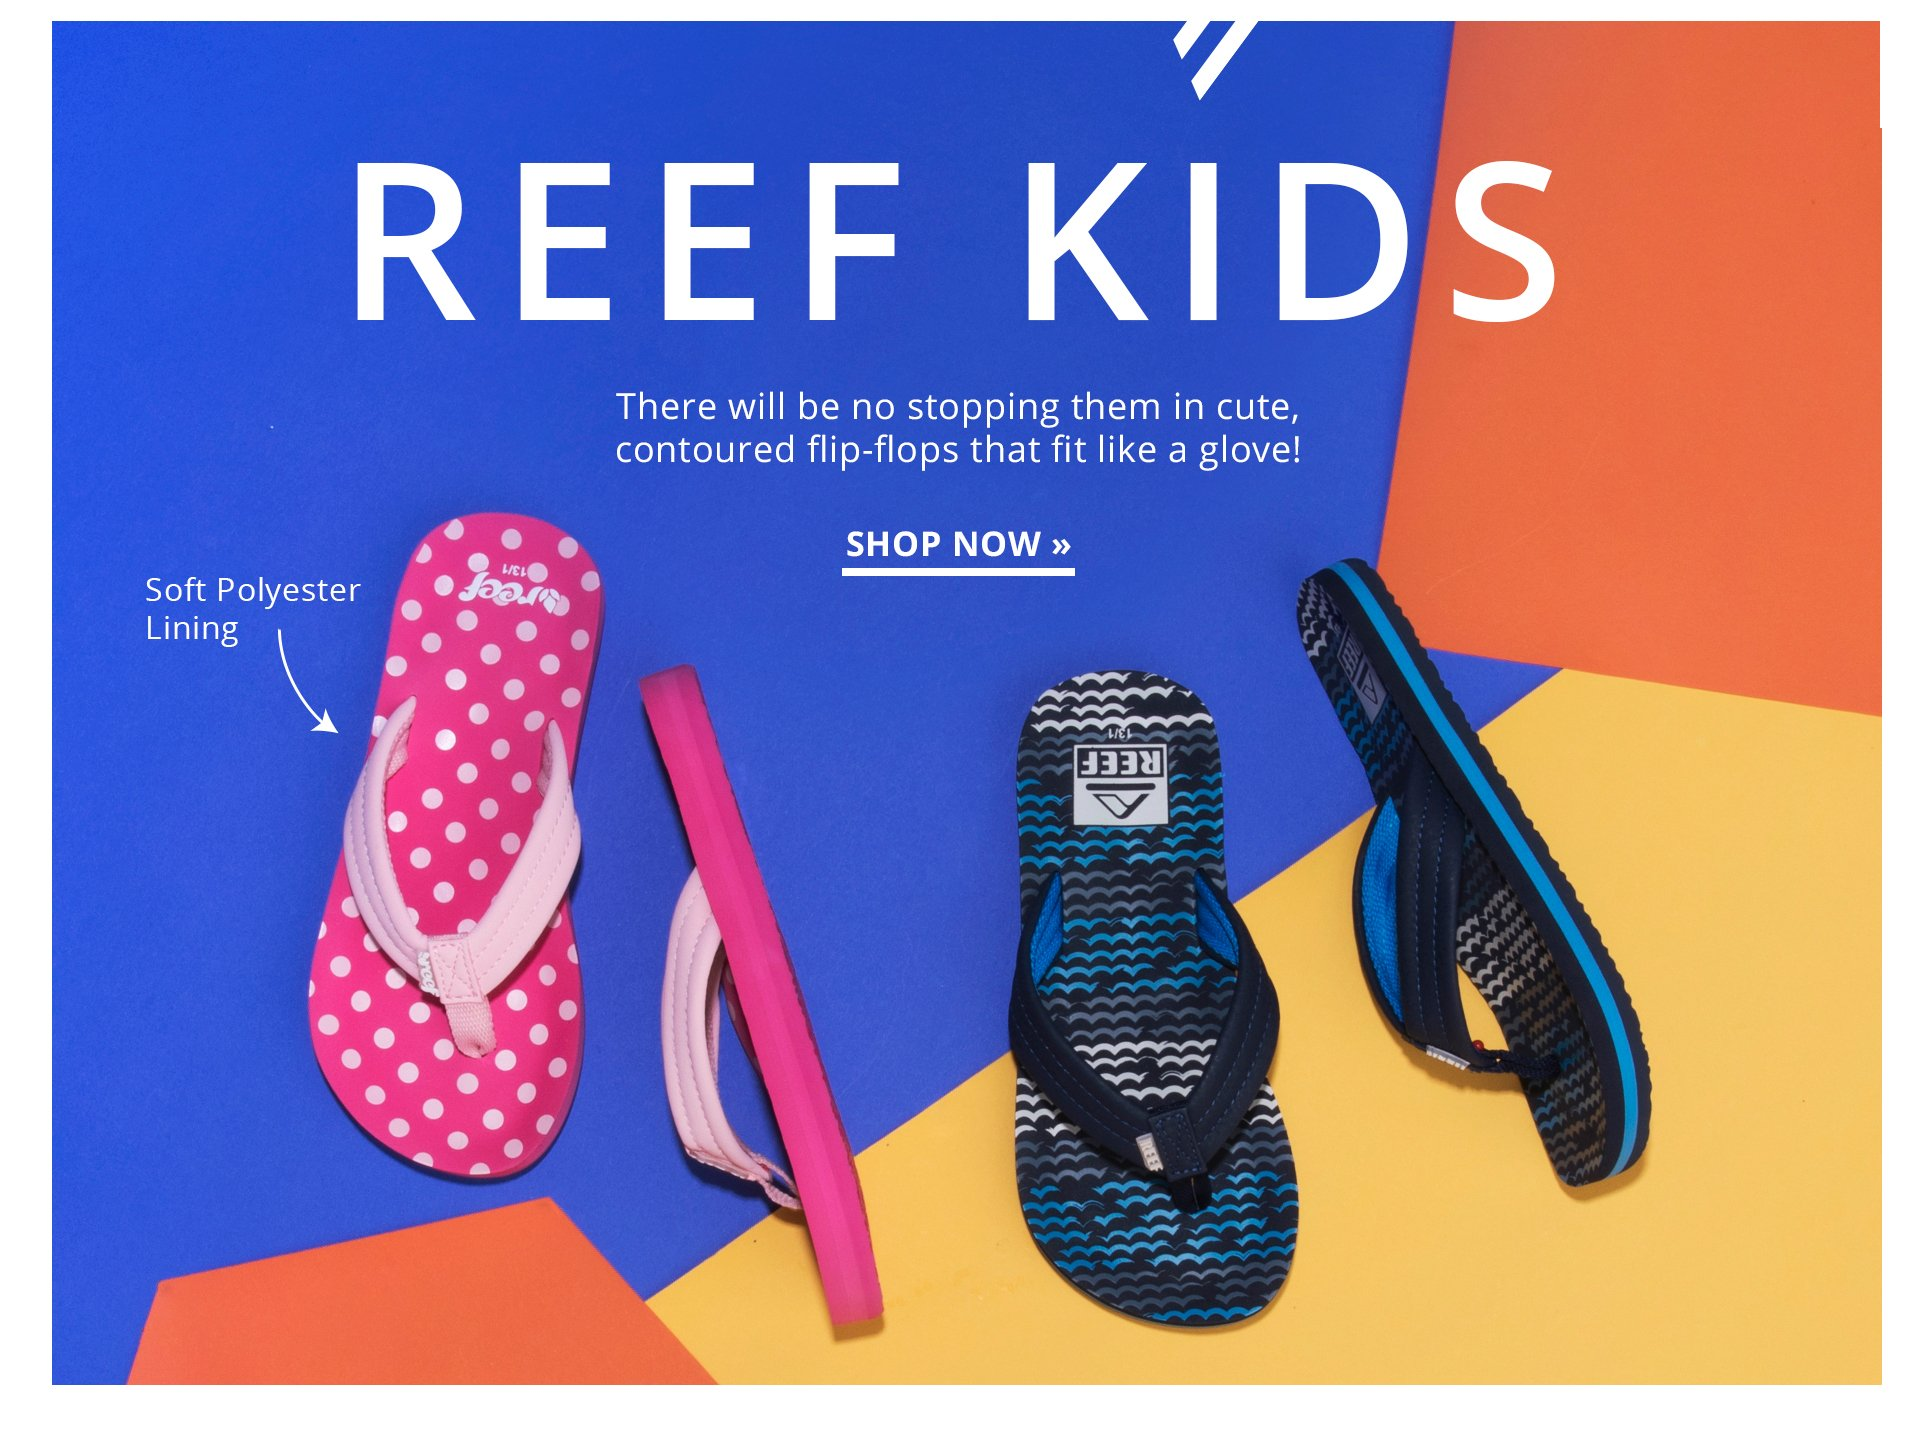 Reef Kids. There will be no stopping them in cute, contoured flip-flops that fit like a glove! Shop Now.